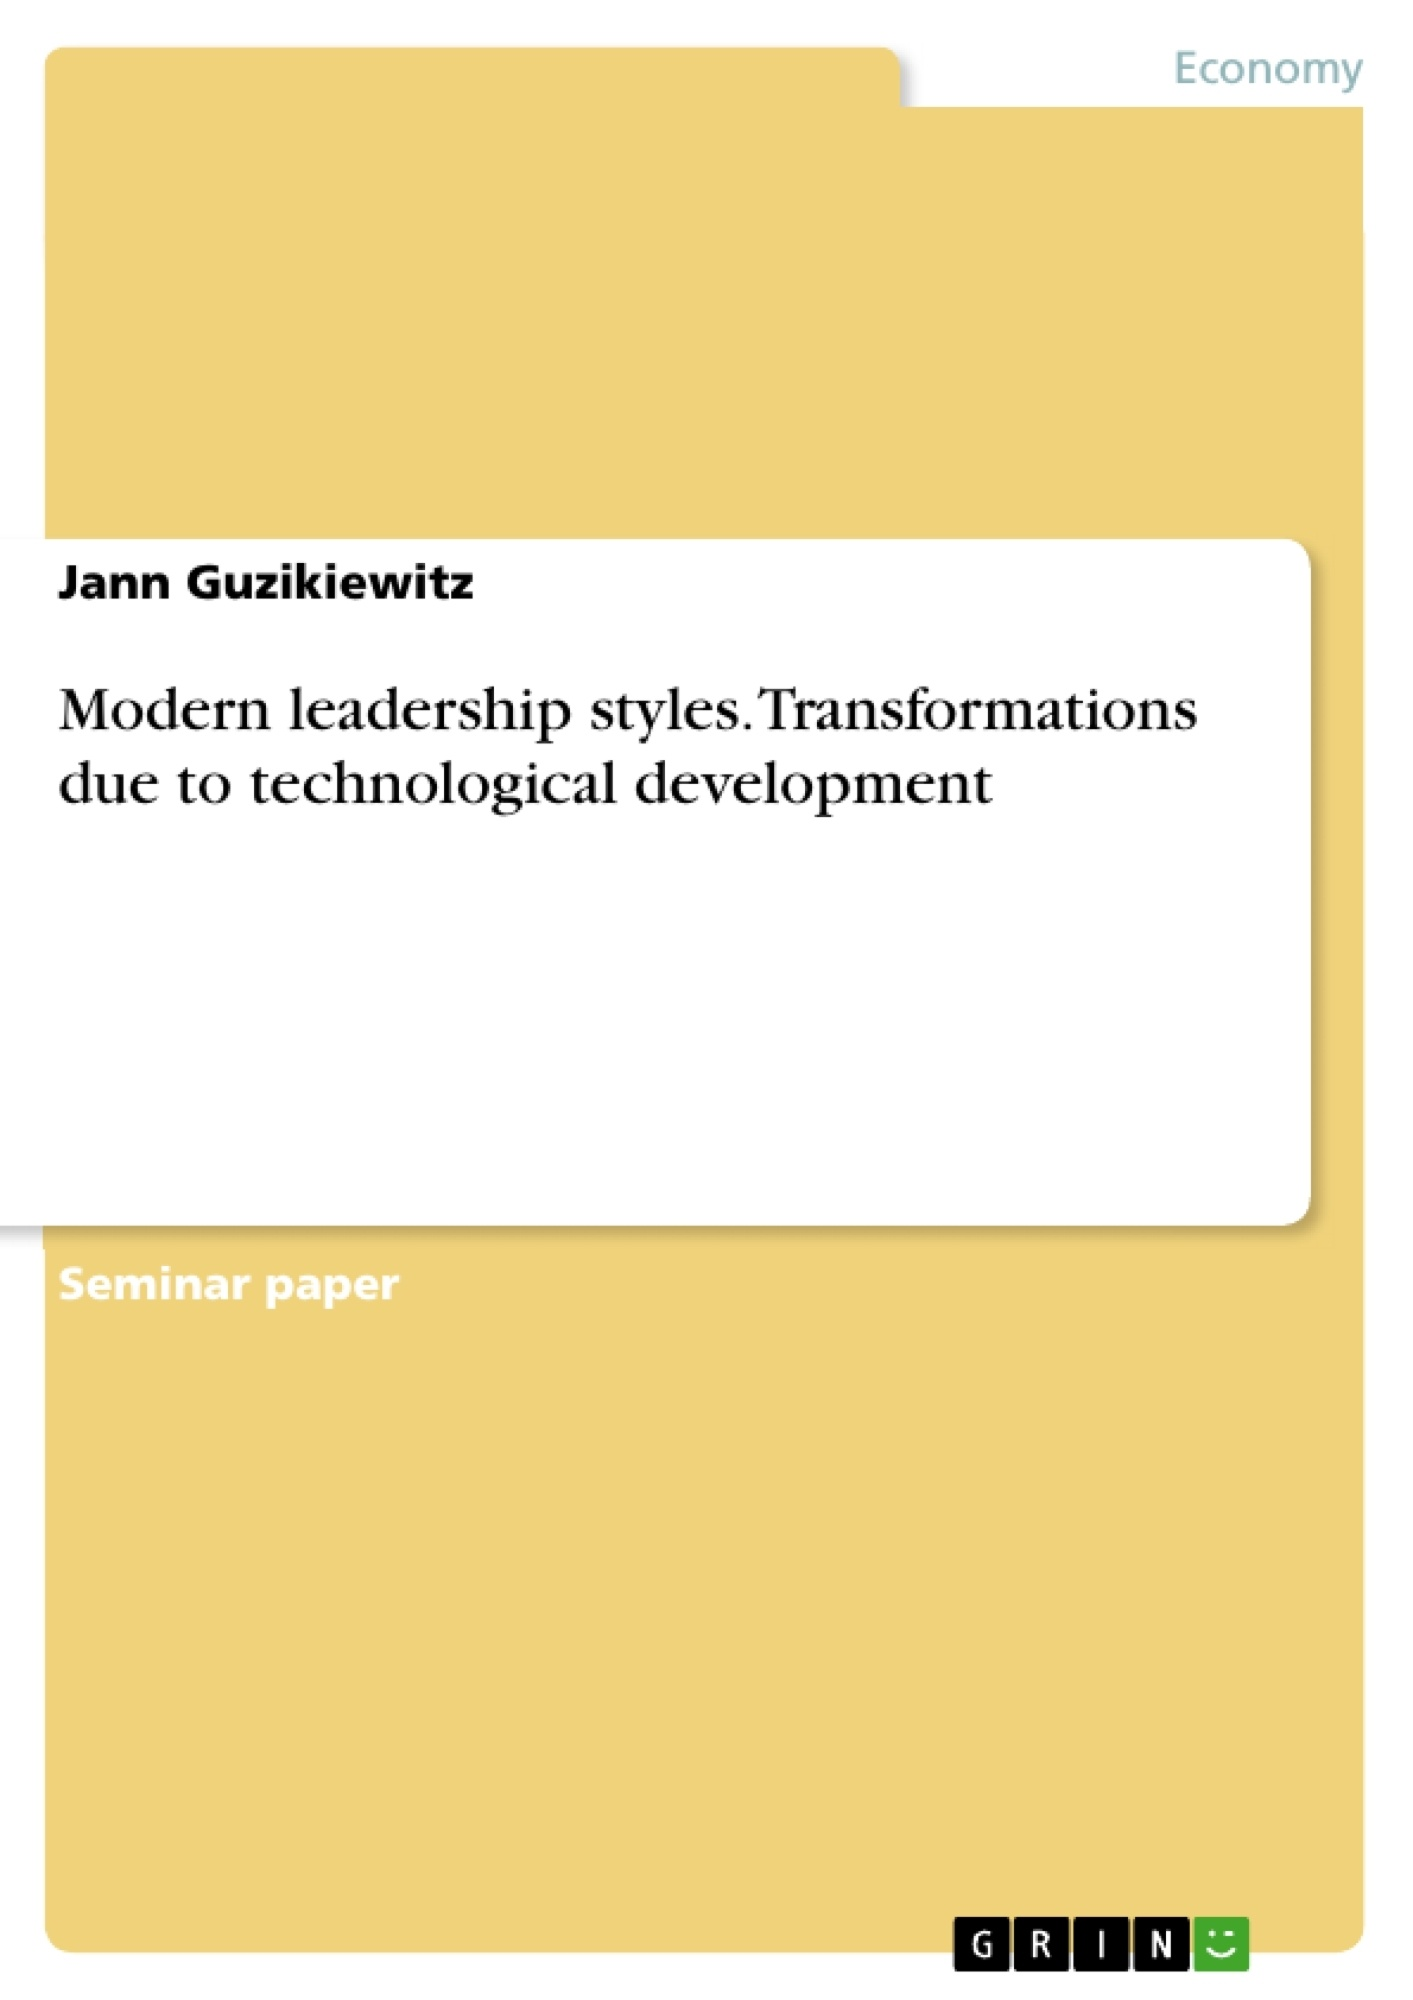 Title: Modern leadership styles. Transformations due to technological development